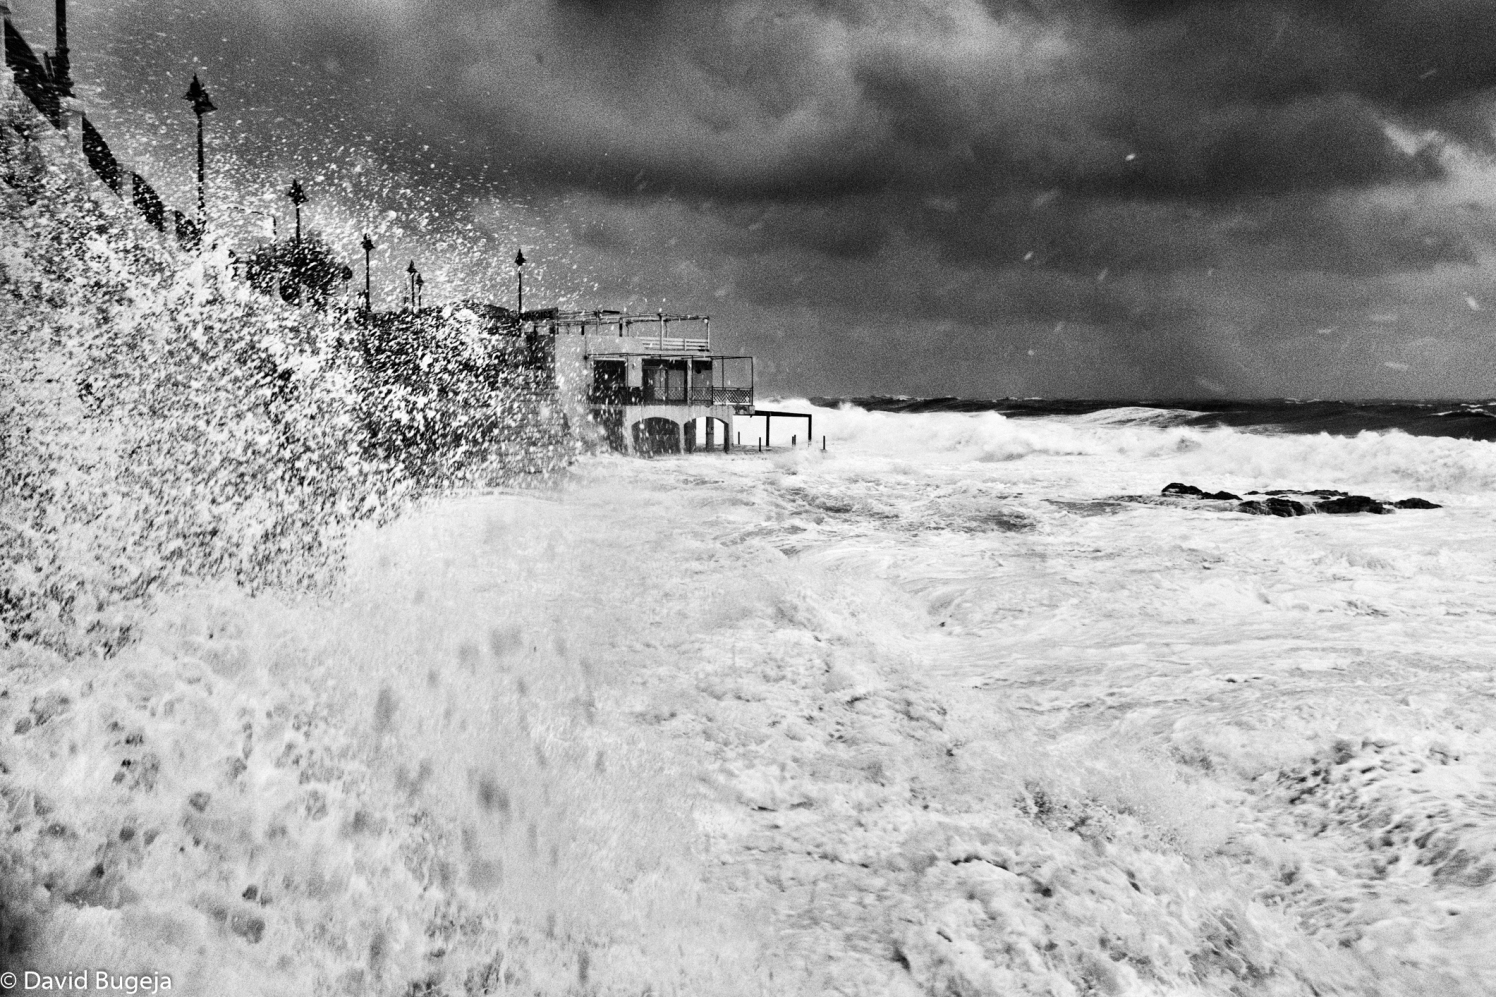 Sliema Seafront - Surfside Restaurant battered by incoming thirty foot plus waves David Bugeja (c) 2019